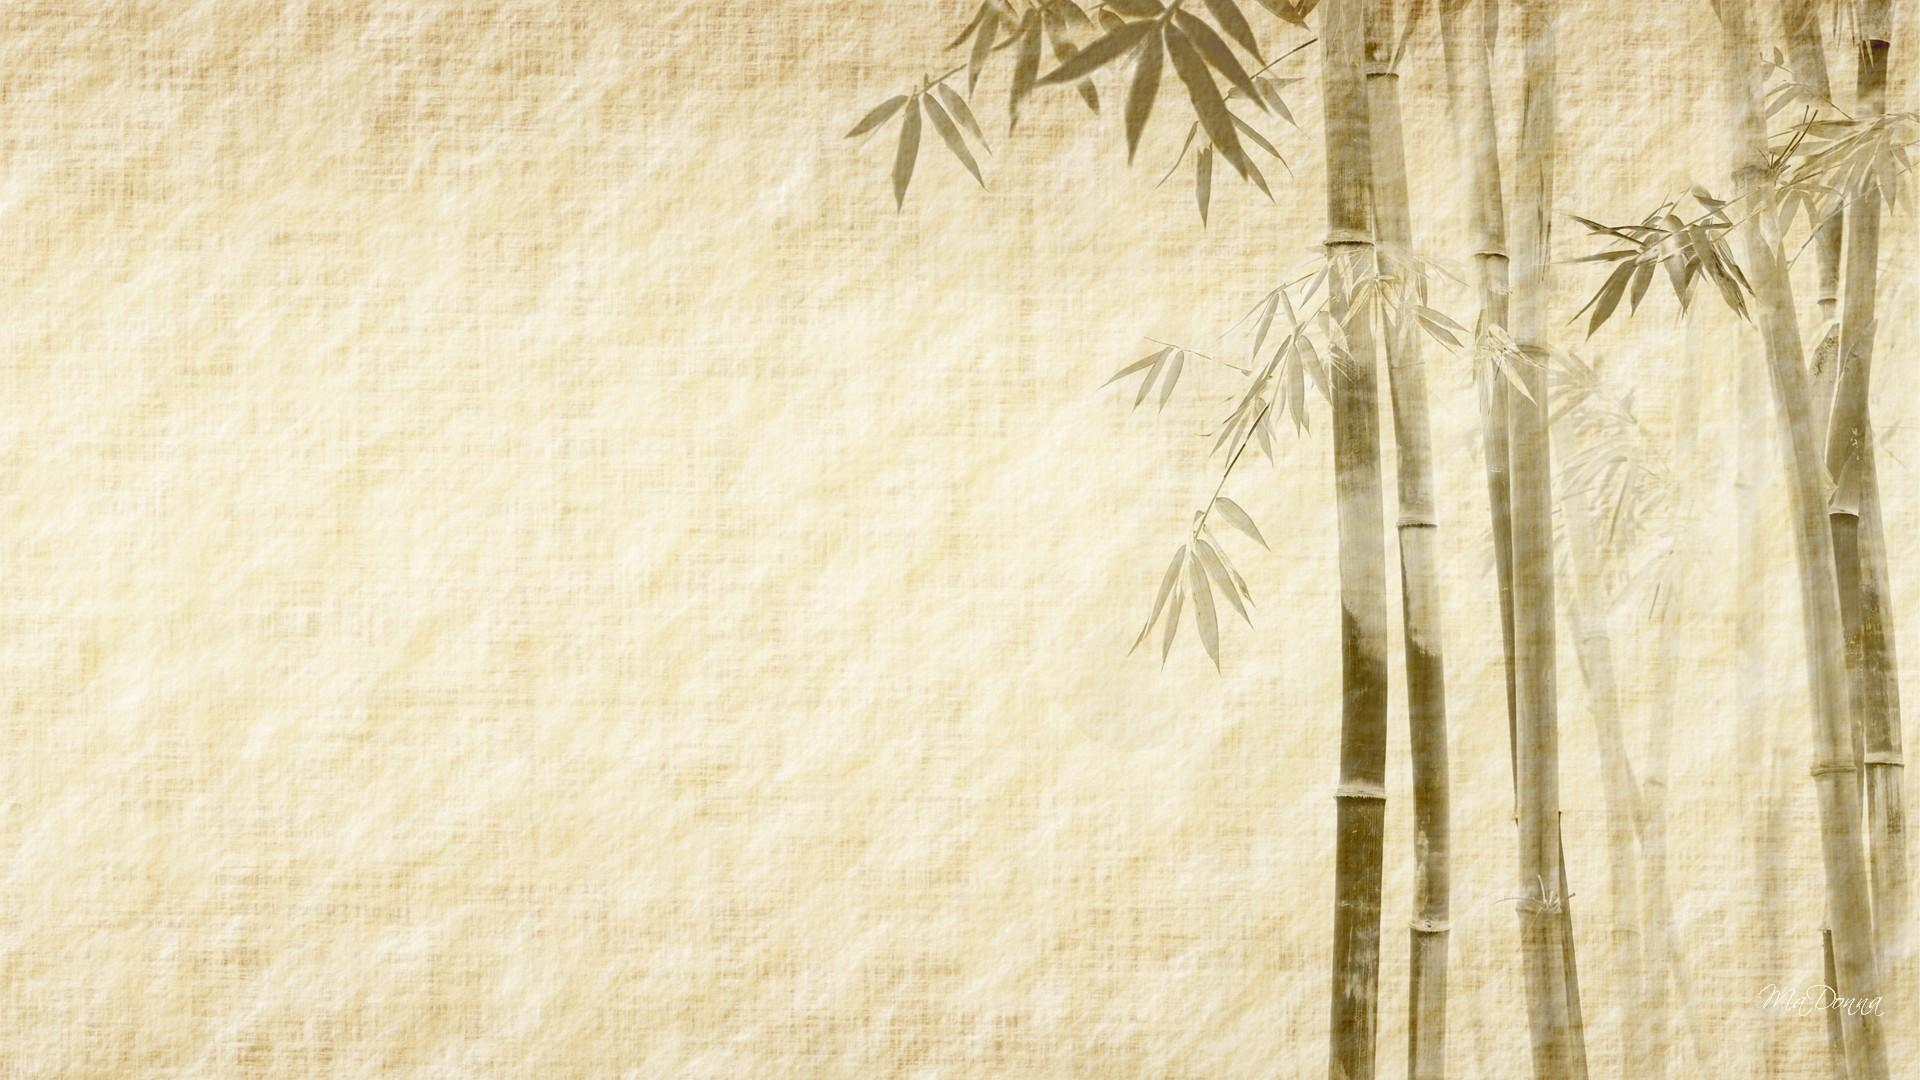 Free Hd Bamboo Wallpapers Pixelstalknet